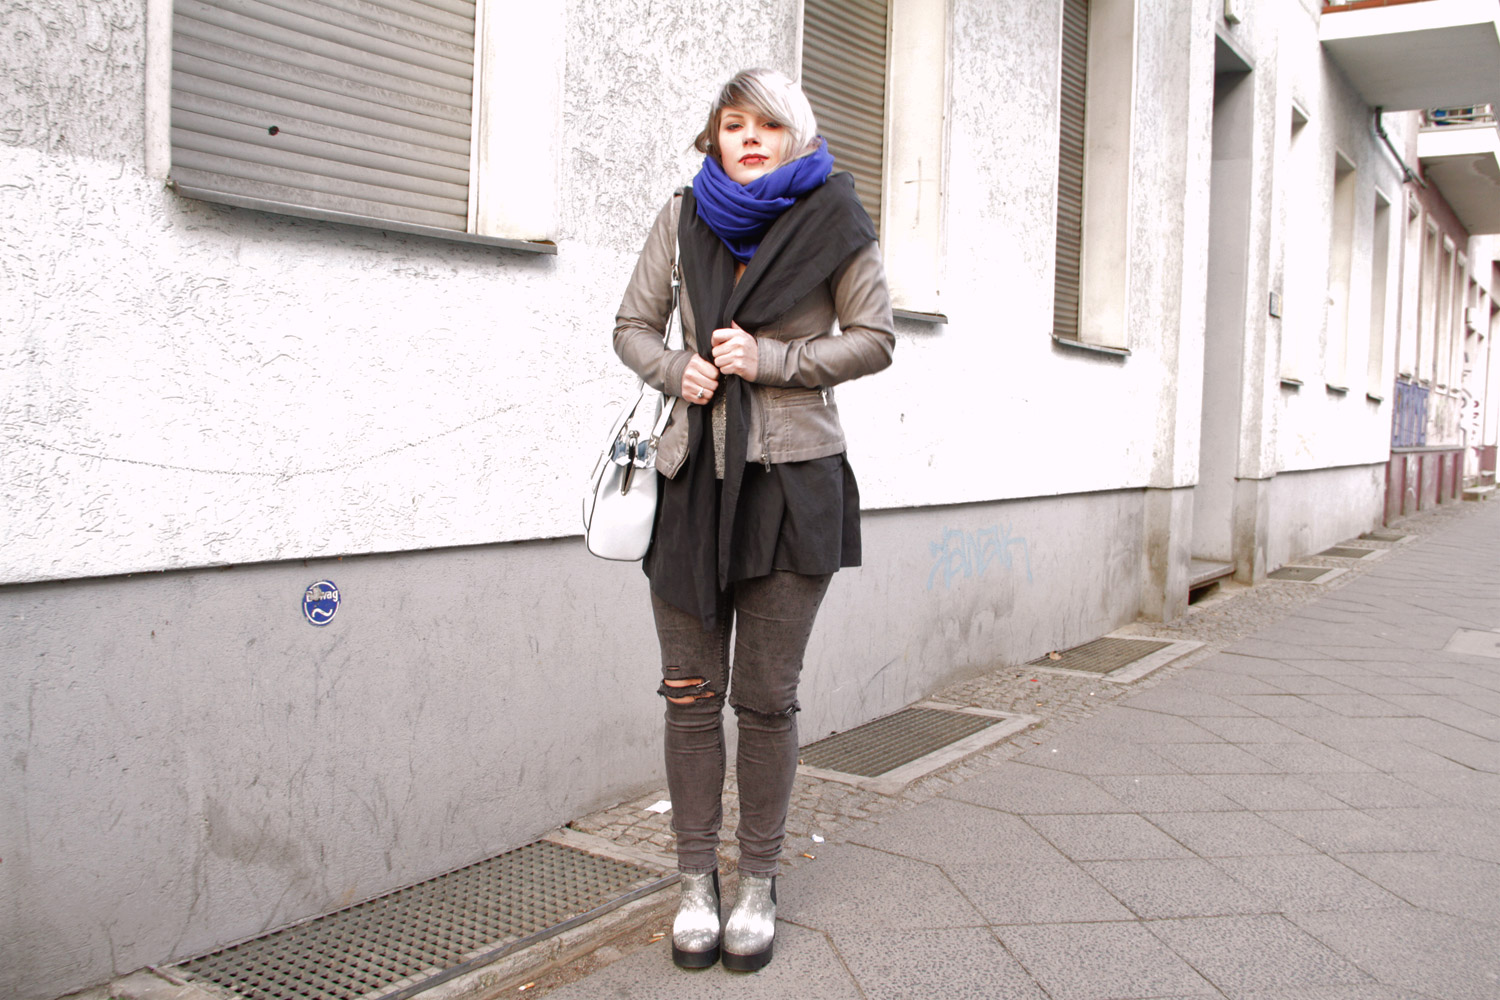 h&m, strick, frühling, spring, scarf, schal, river island, asos, ripped jeans, punk, american apparel, leder, leather, fake leather, vegan leather, veganes leder, lederjacke, vegane lederjacke, hellblau, blau, grau, chelsea boots, silver hair, silbernes haar, silber haare, graue haare, grey hair, limecrime venus, cardigan, alternative, alternative mode, fashion, streetstyle, berlin